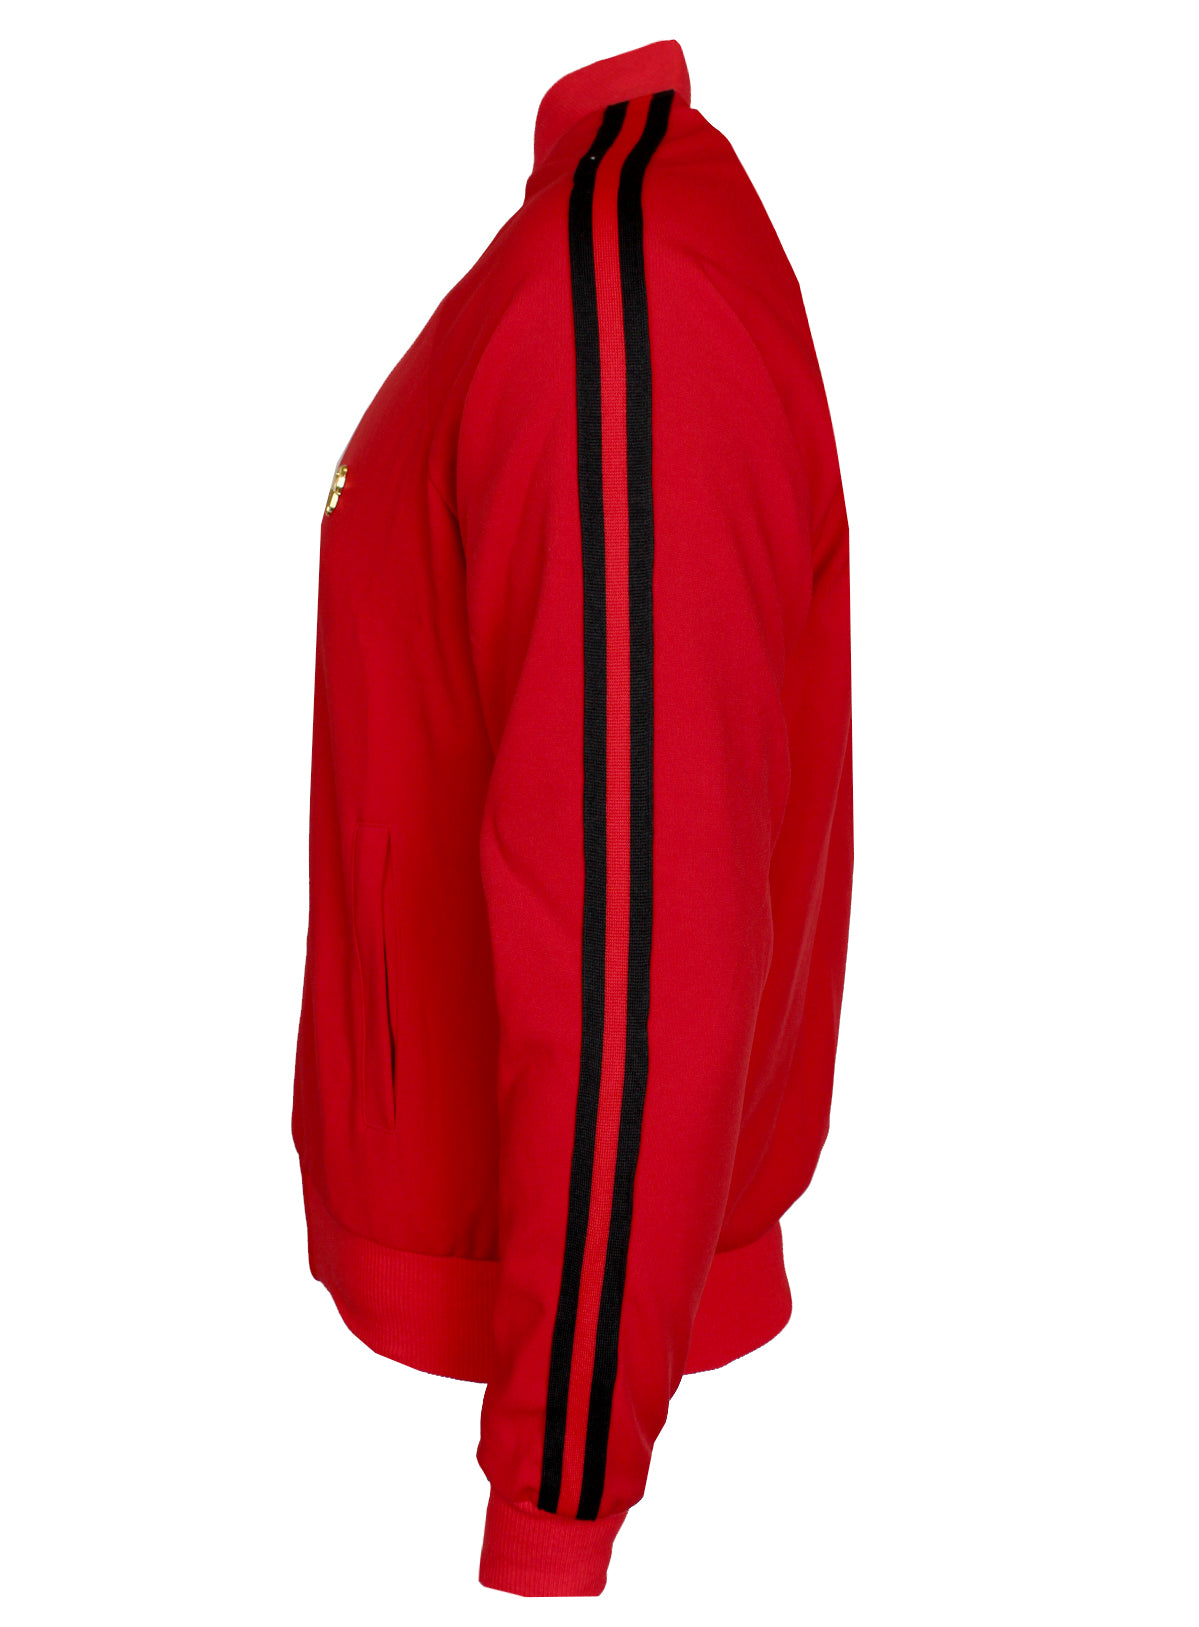 KASH Red Track Jacket